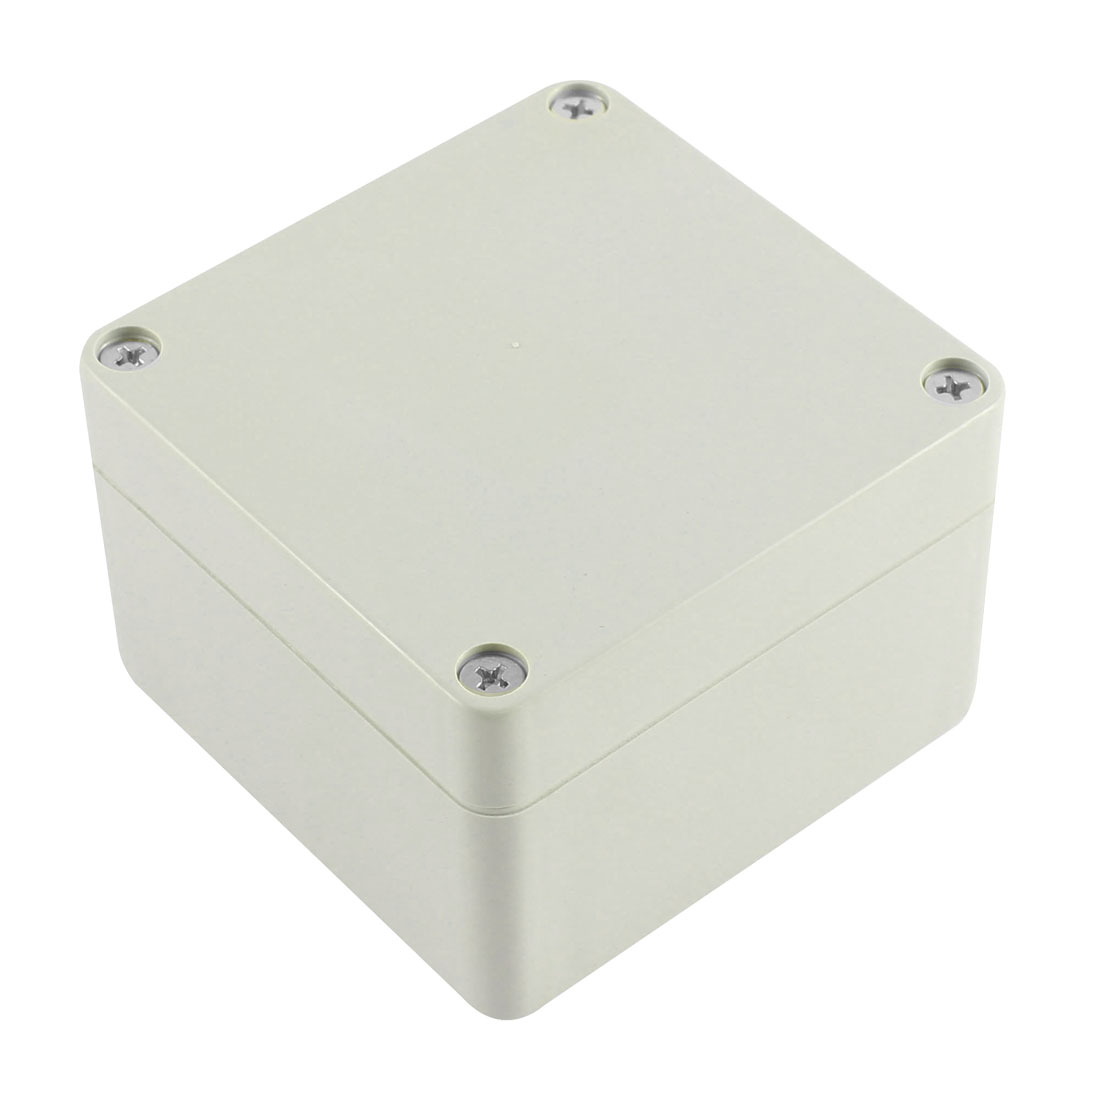 Electrical Plastic Enclosure Dustproof IP65 Project Junction Box 82 x 80 x 56mm